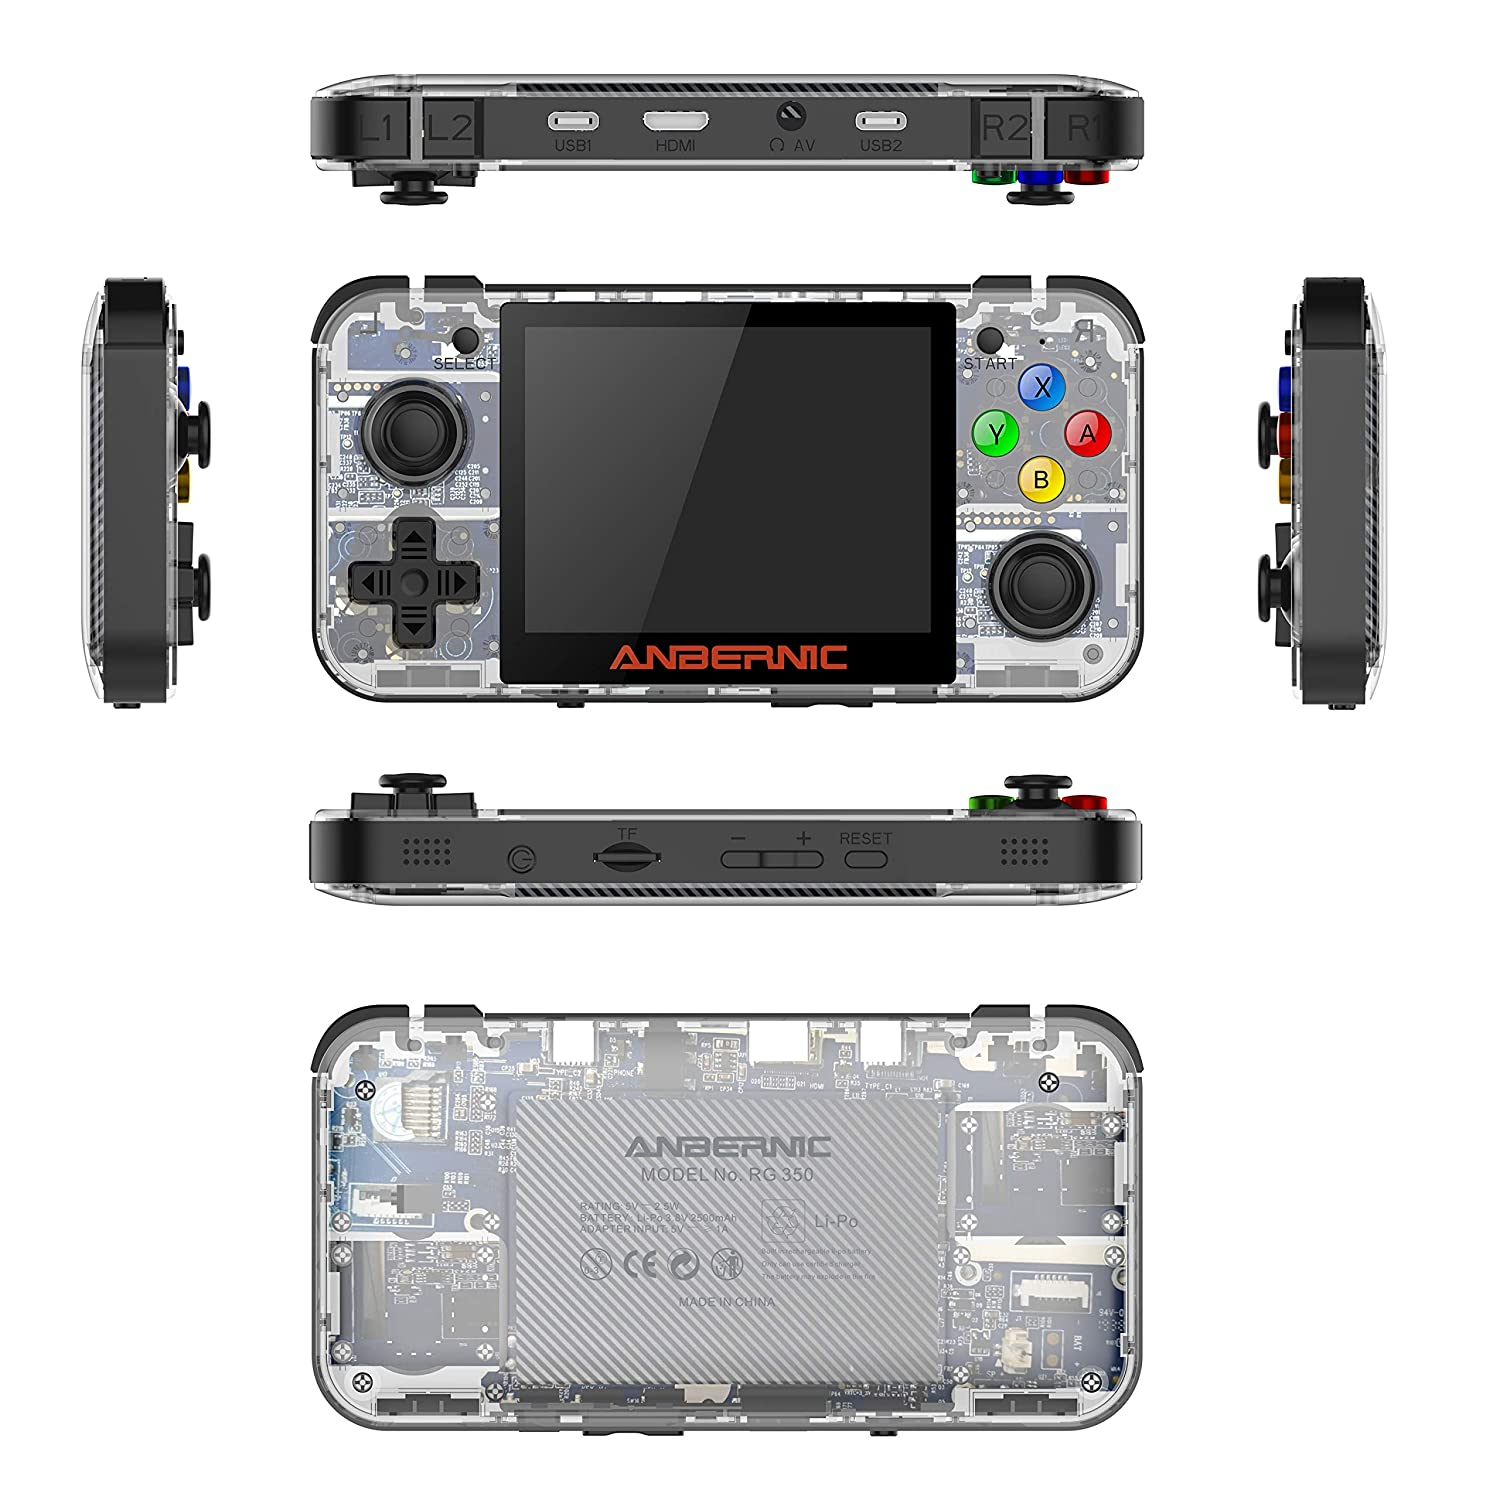 Transparent White RG350 Retro Game Console OpenDingux Tony System Handheld Game Console Free with 32G TF Card Built-in 2500 Classic Game Console 3.5 Inch IPS Screen Portable Video Game Console